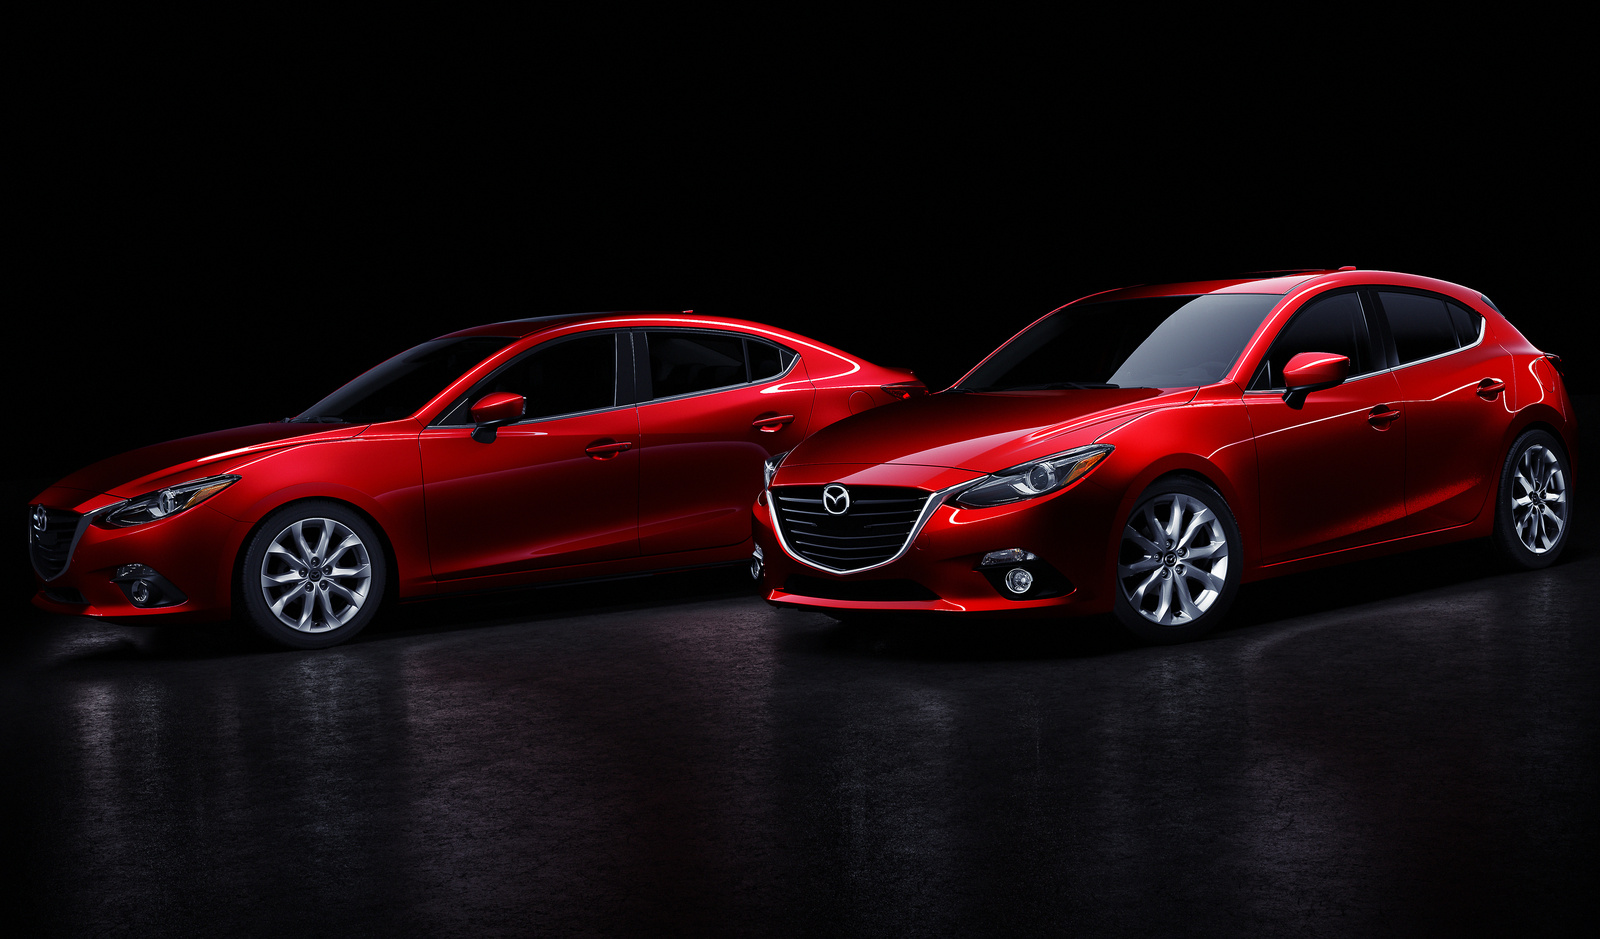 Front-quarter views of the sedan and hatchback